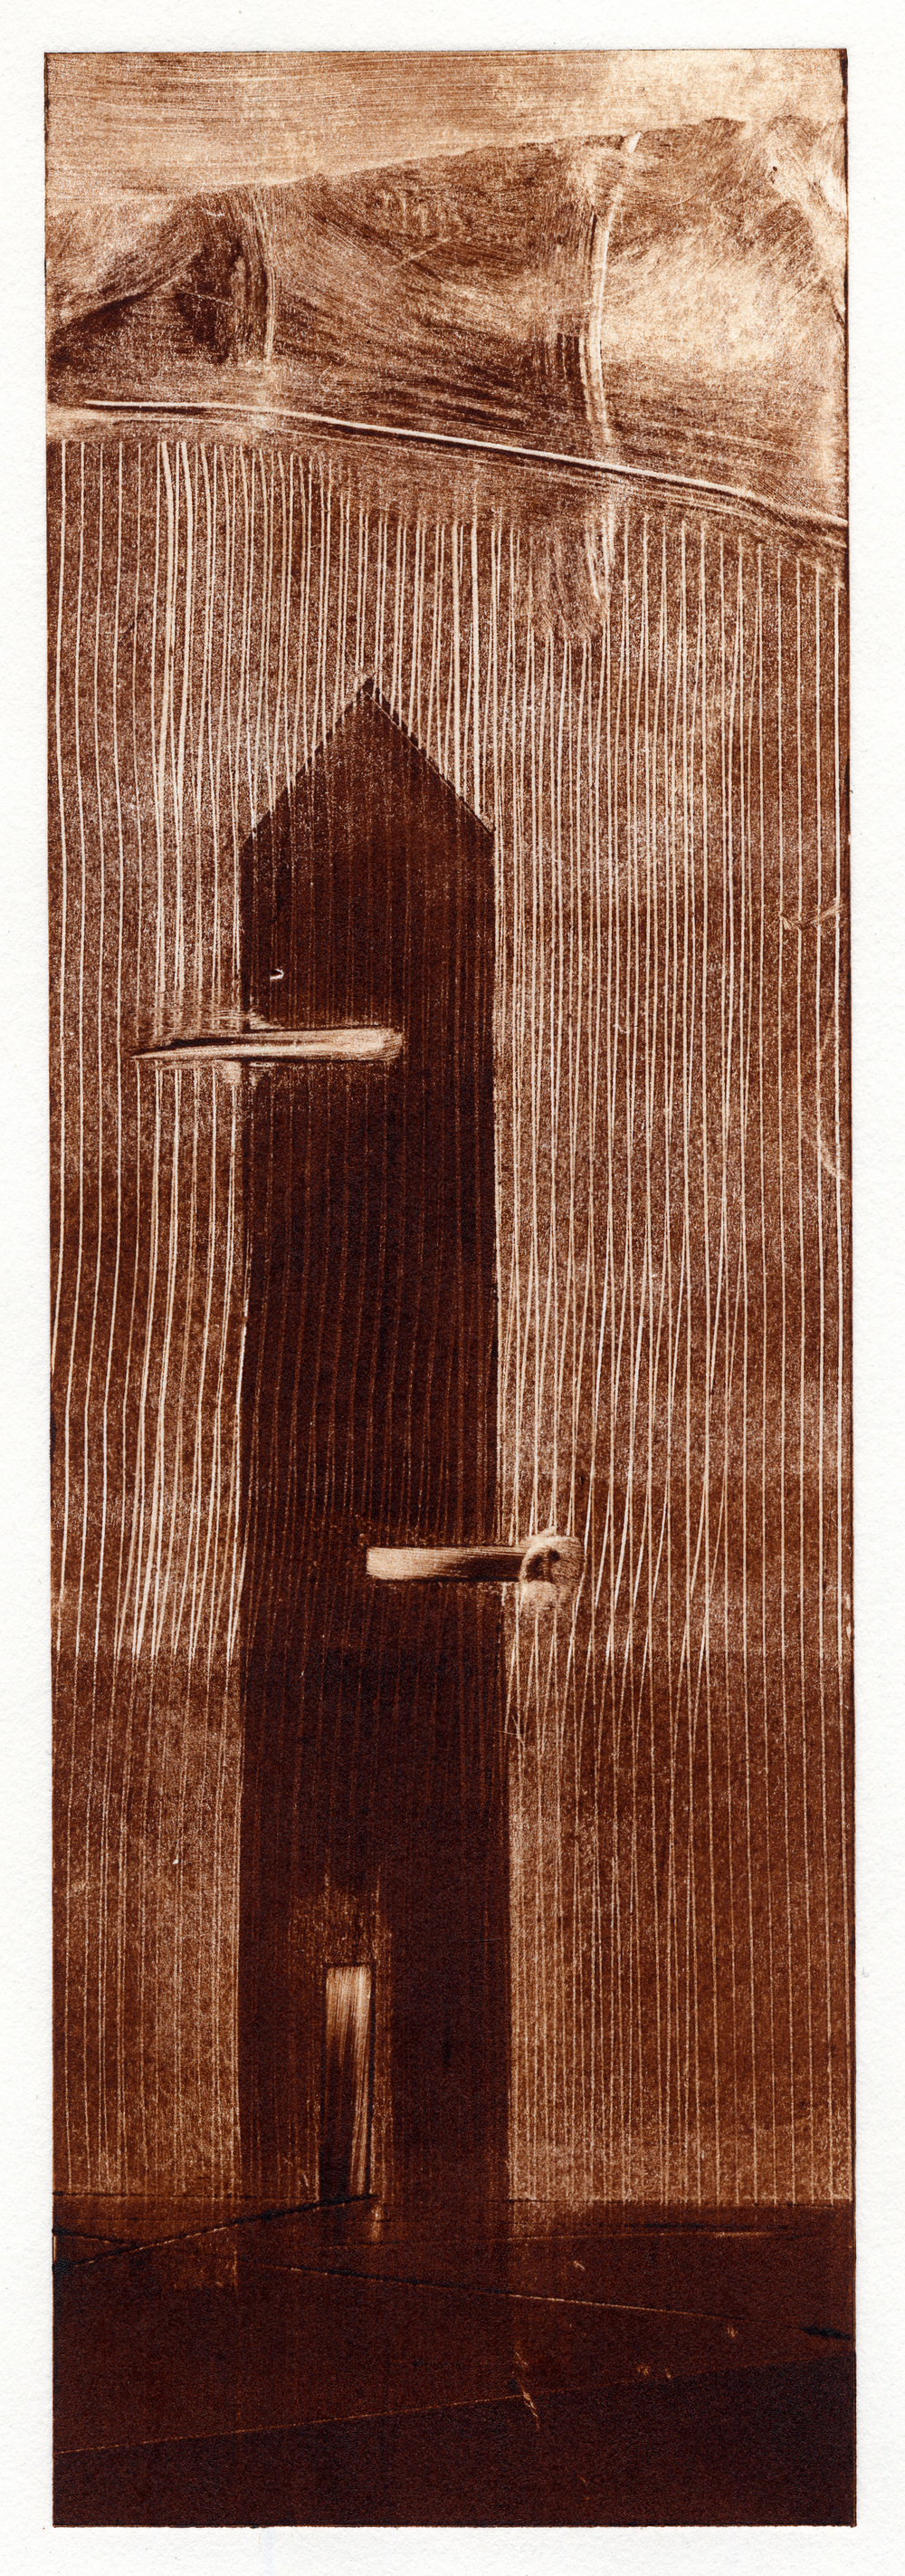 A monotype print in umber featuring a dwelling by Clive Knights